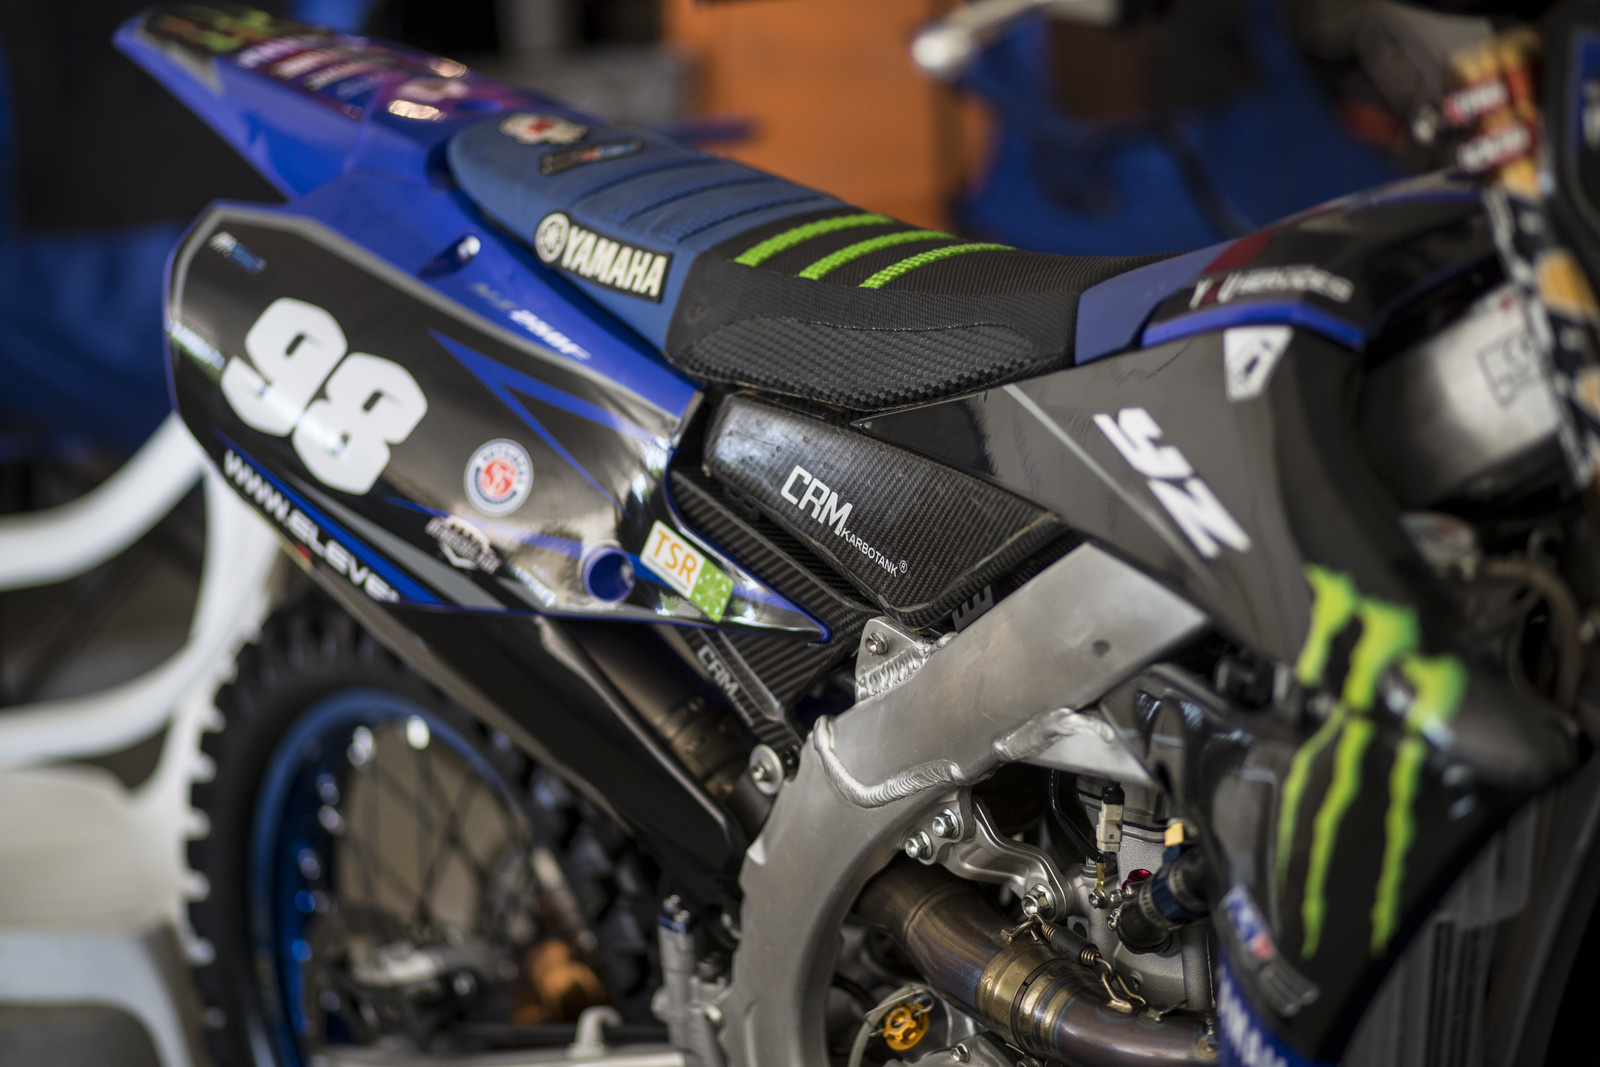 We'll jump right into the bike stuff. We have a few bikes from the EMX250 class. This is the YZ250F of Thibault Benistant of the MJC Yamaha Team, a Yamaha supported team. That carbon tank and subframe can't be cheap.